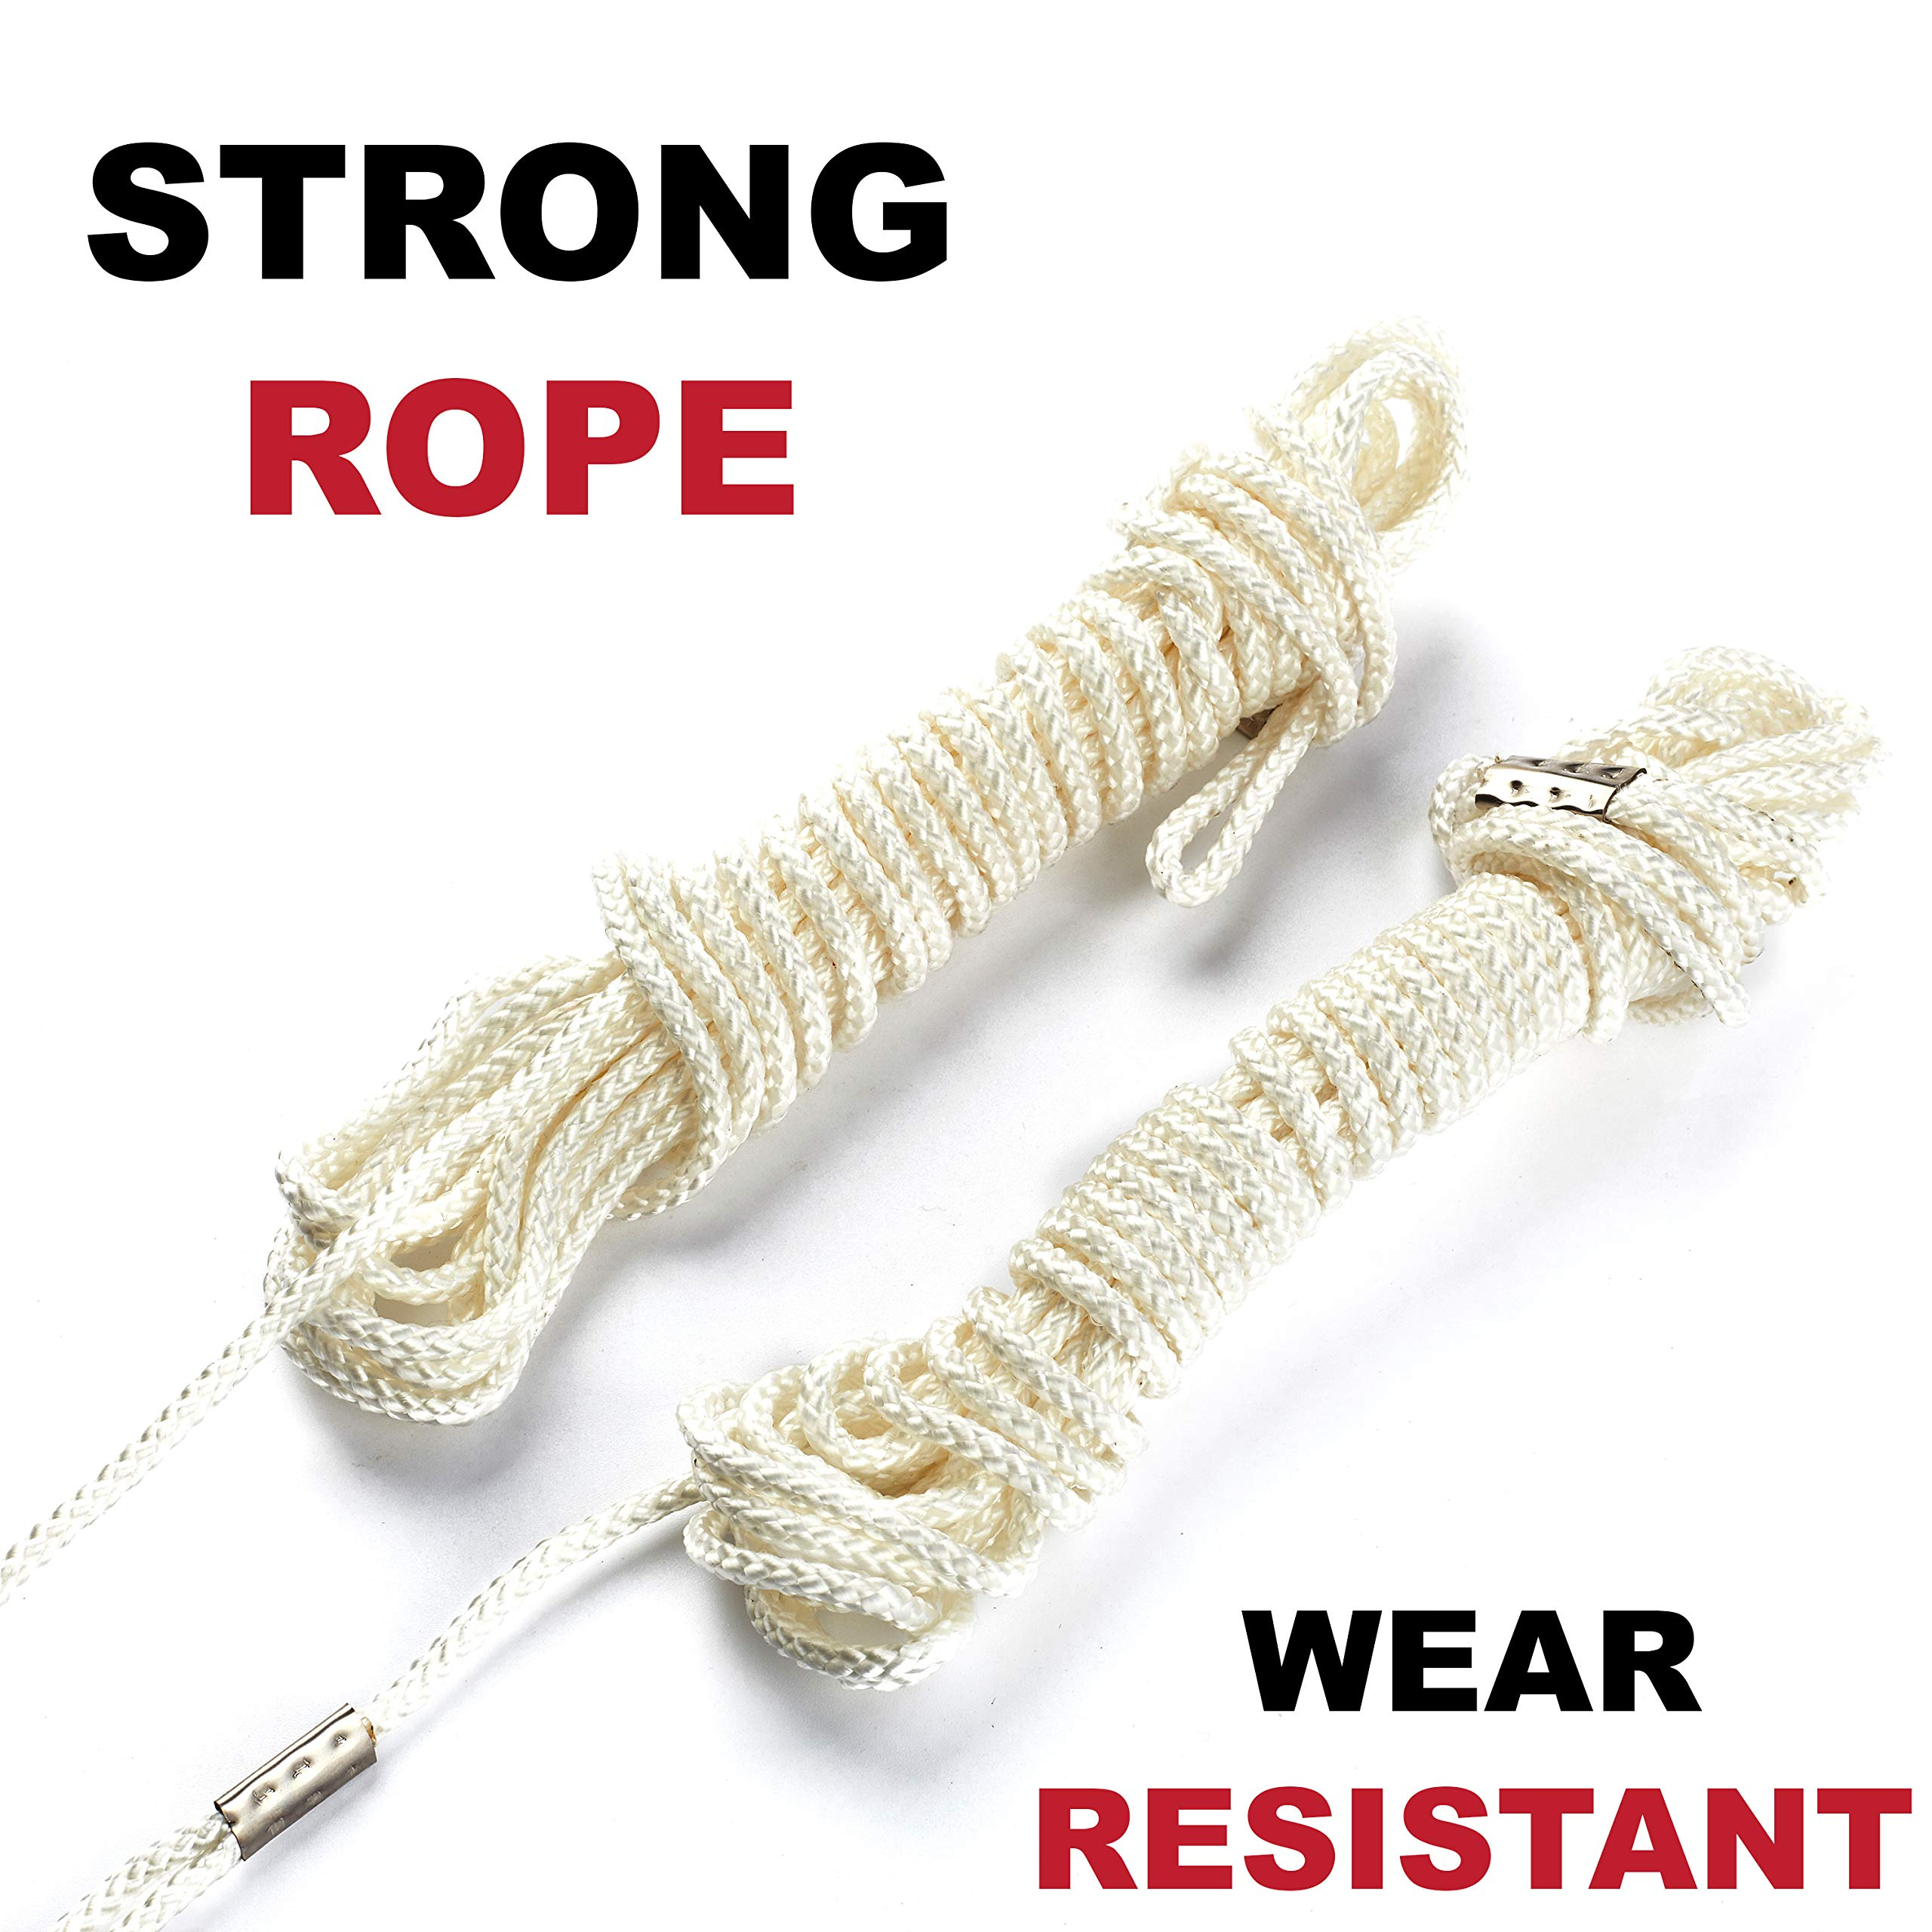 Kutir 48 Inch High Reach Tree Limb Hand Rope Chain Saw - Cuts Branches Easily, Blades on Both Sides so it Doesn't Matter How it Lands - Comes with Ropes, Throwing Weight Pouch Bag - Best for Camping by Kutir (Image #3)